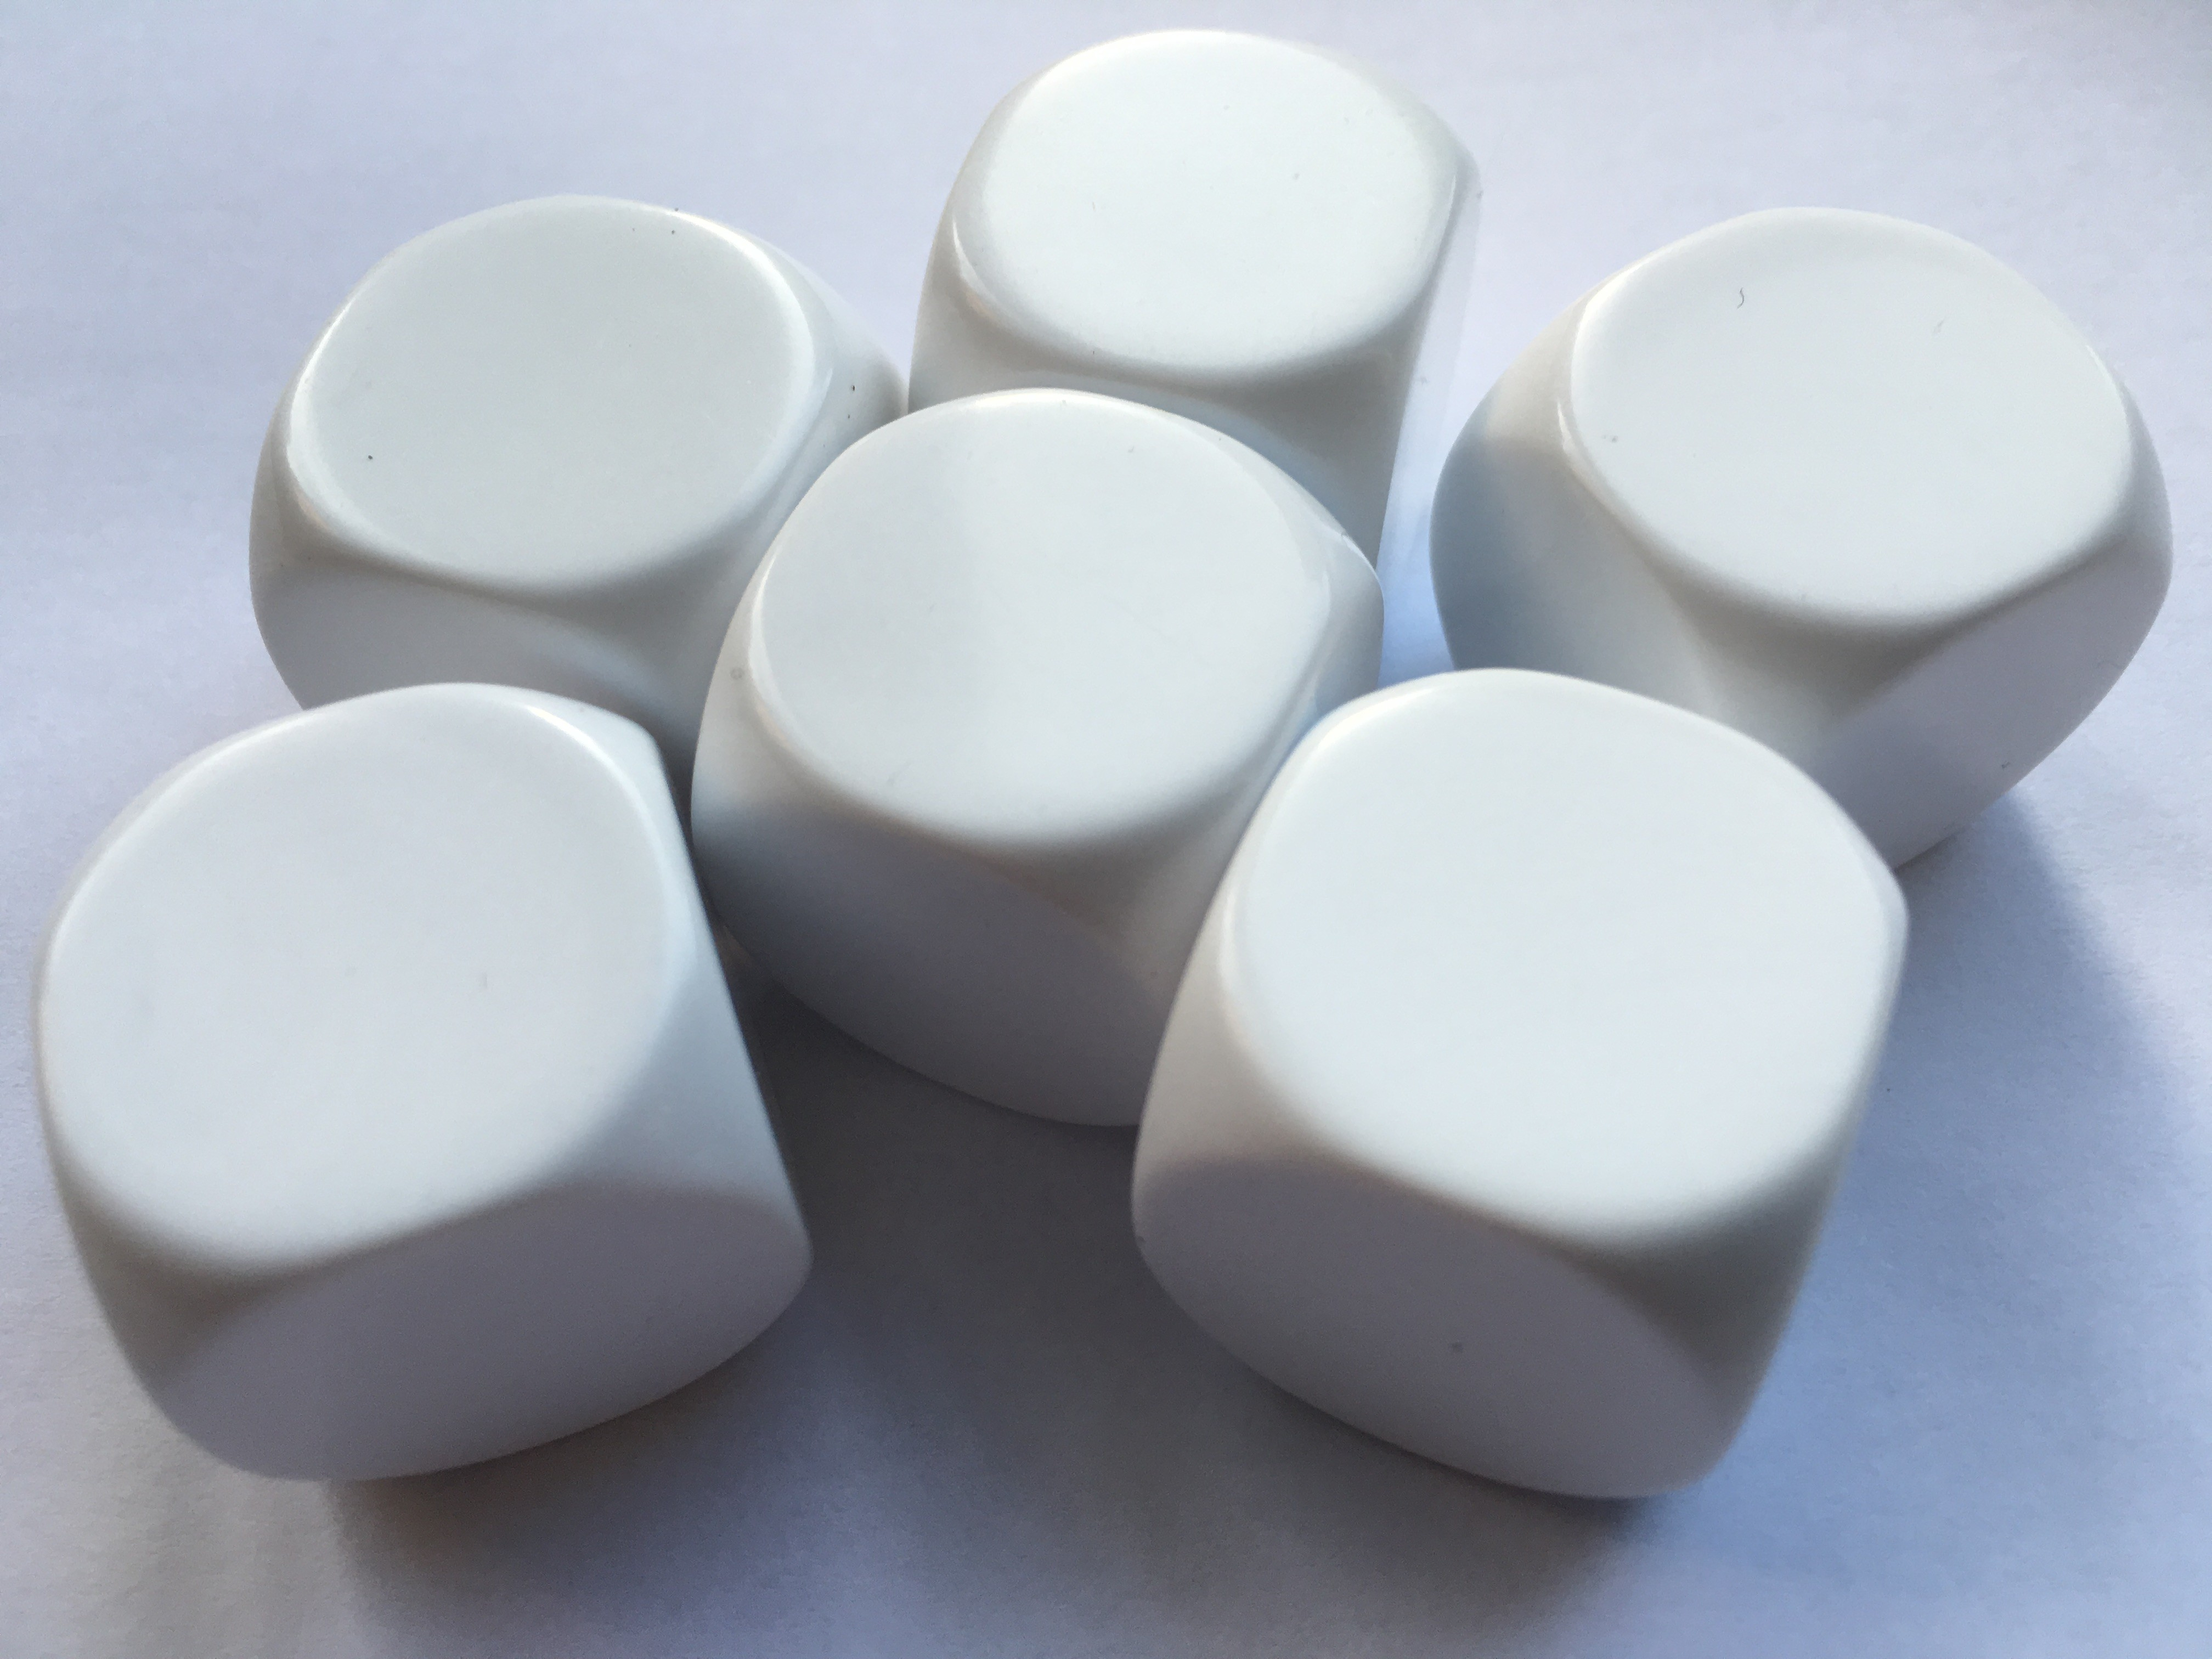 Large Blank White Dice